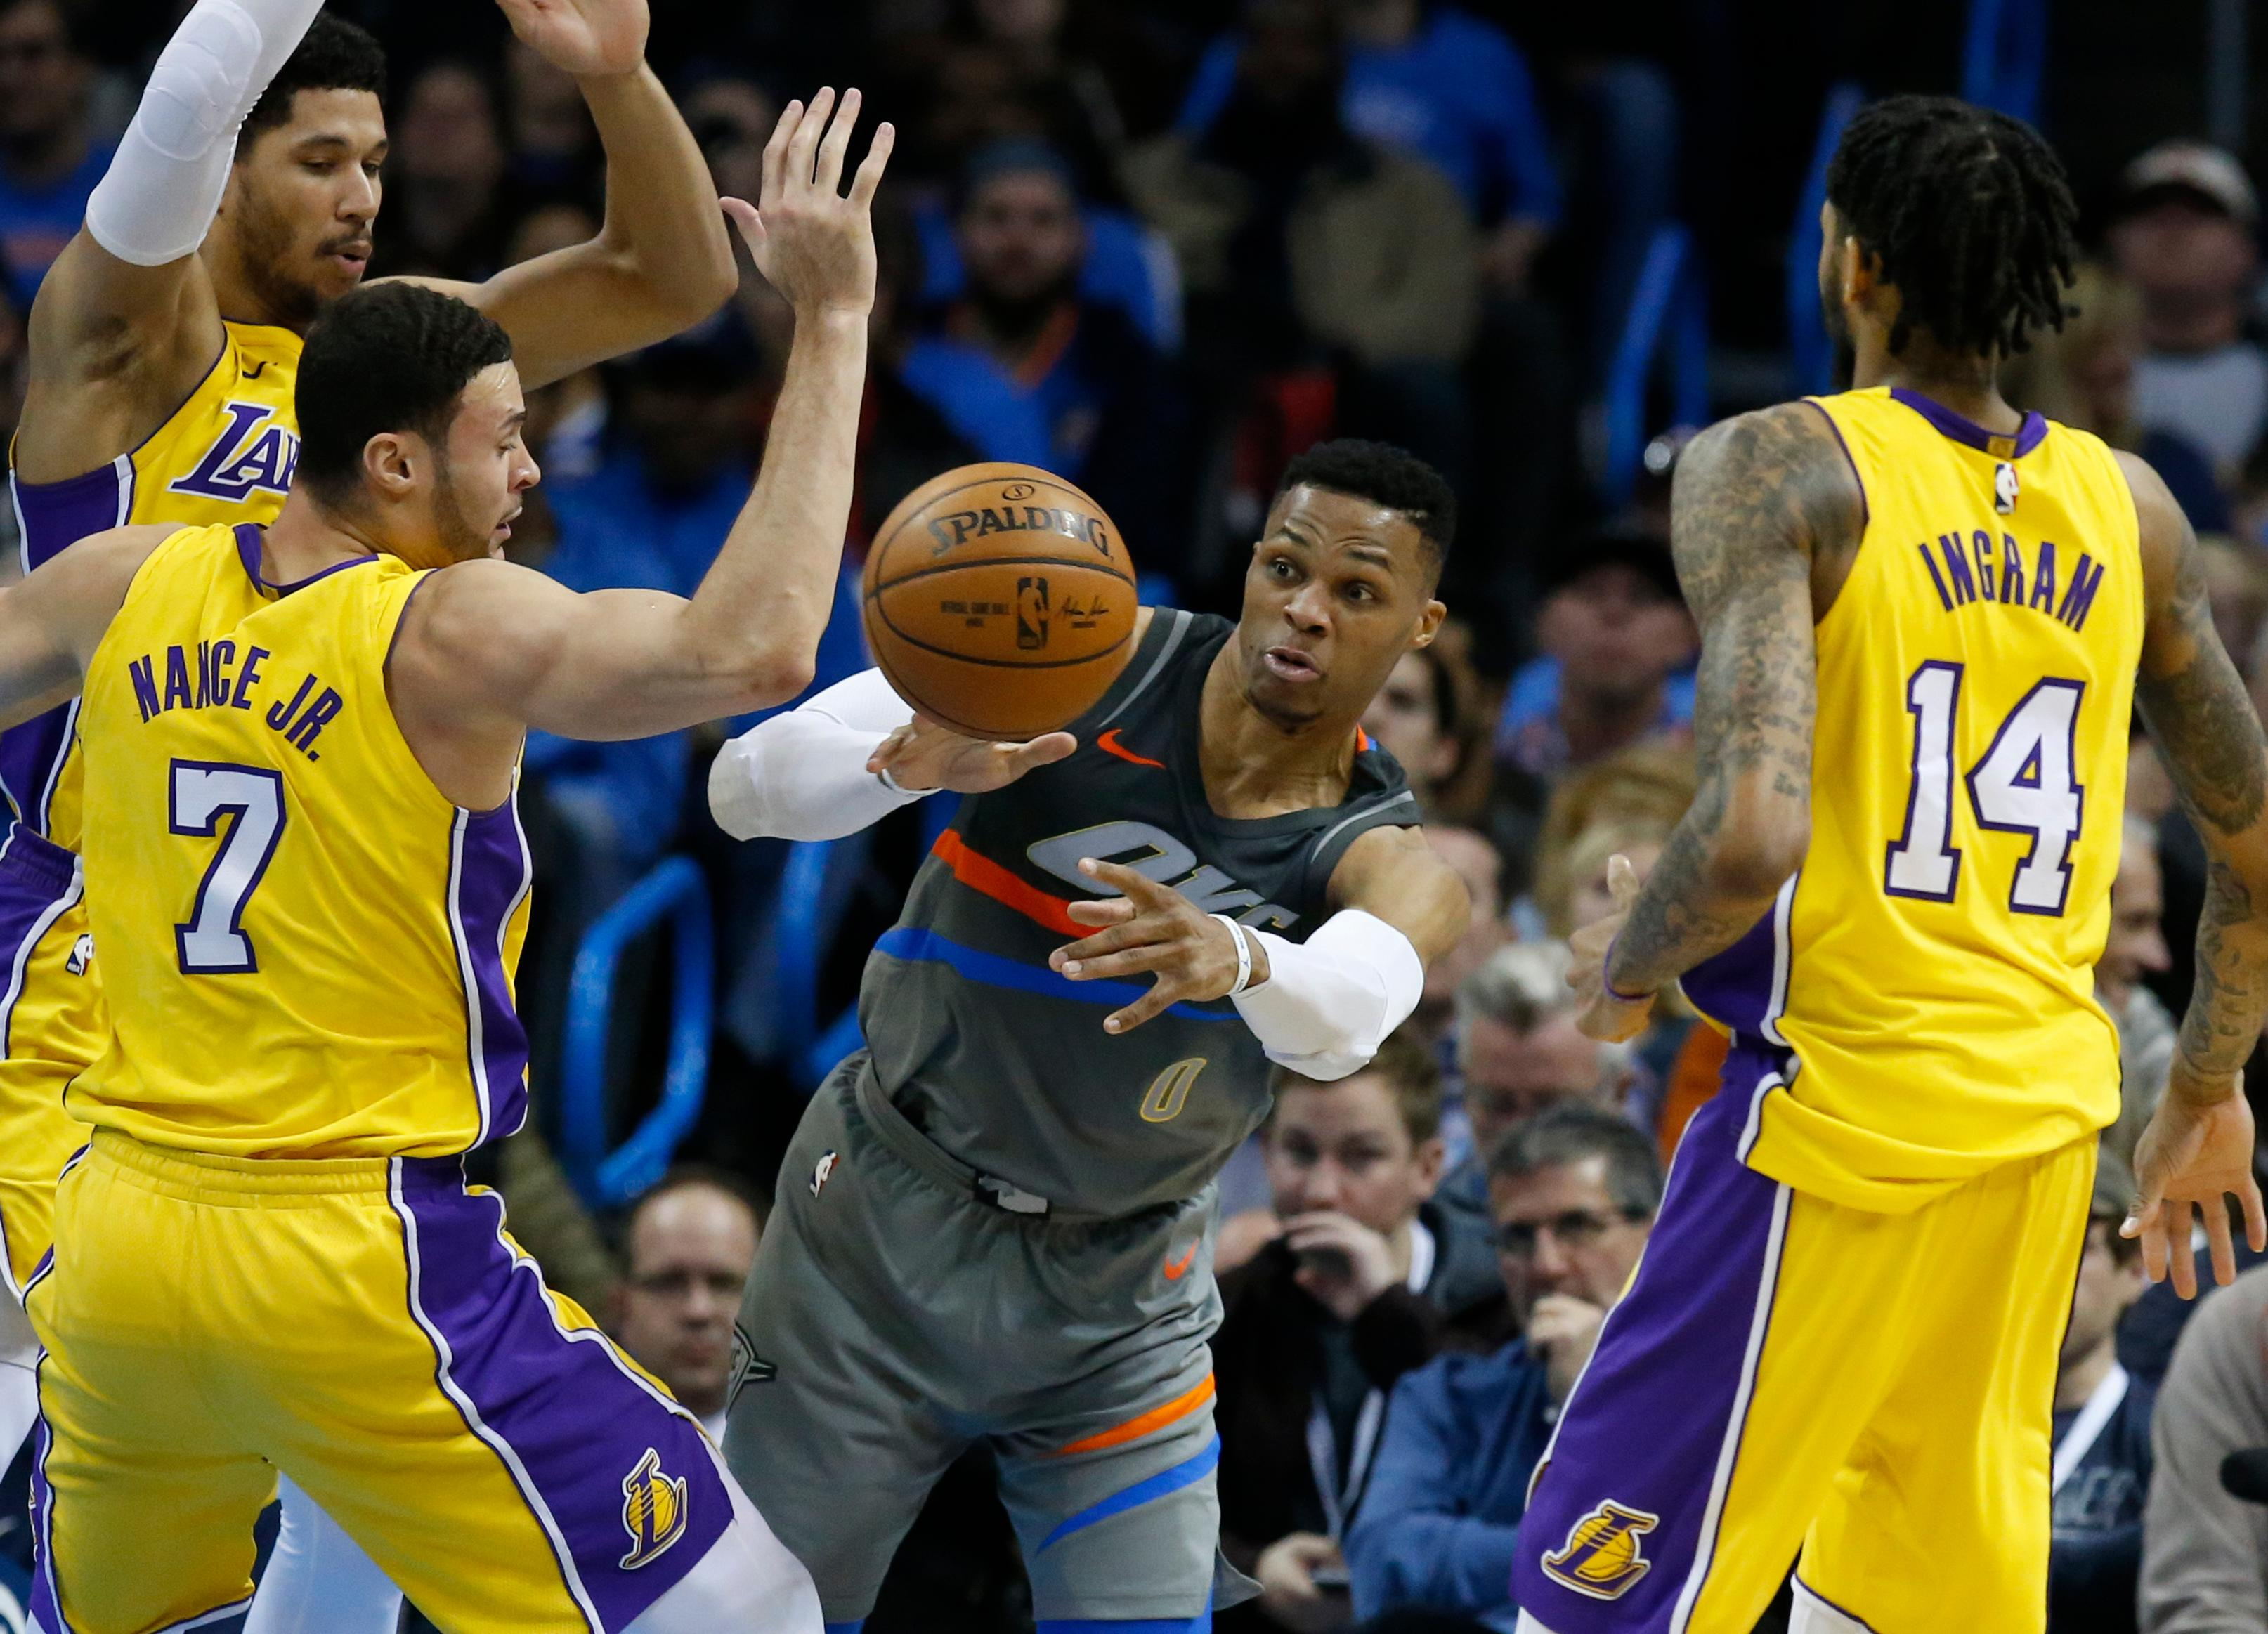 Oklahoma City Thunder guard Russell Westbrook (0) passes between Los Angeles Lakers forwards Larry Nance Jr. (7) and Brandon Ingram (14) in the first half of an NBA basketball game in Oklahoma City, Sunday, Feb. 4, 2018. (AP Photo/Sue Ogrocki)